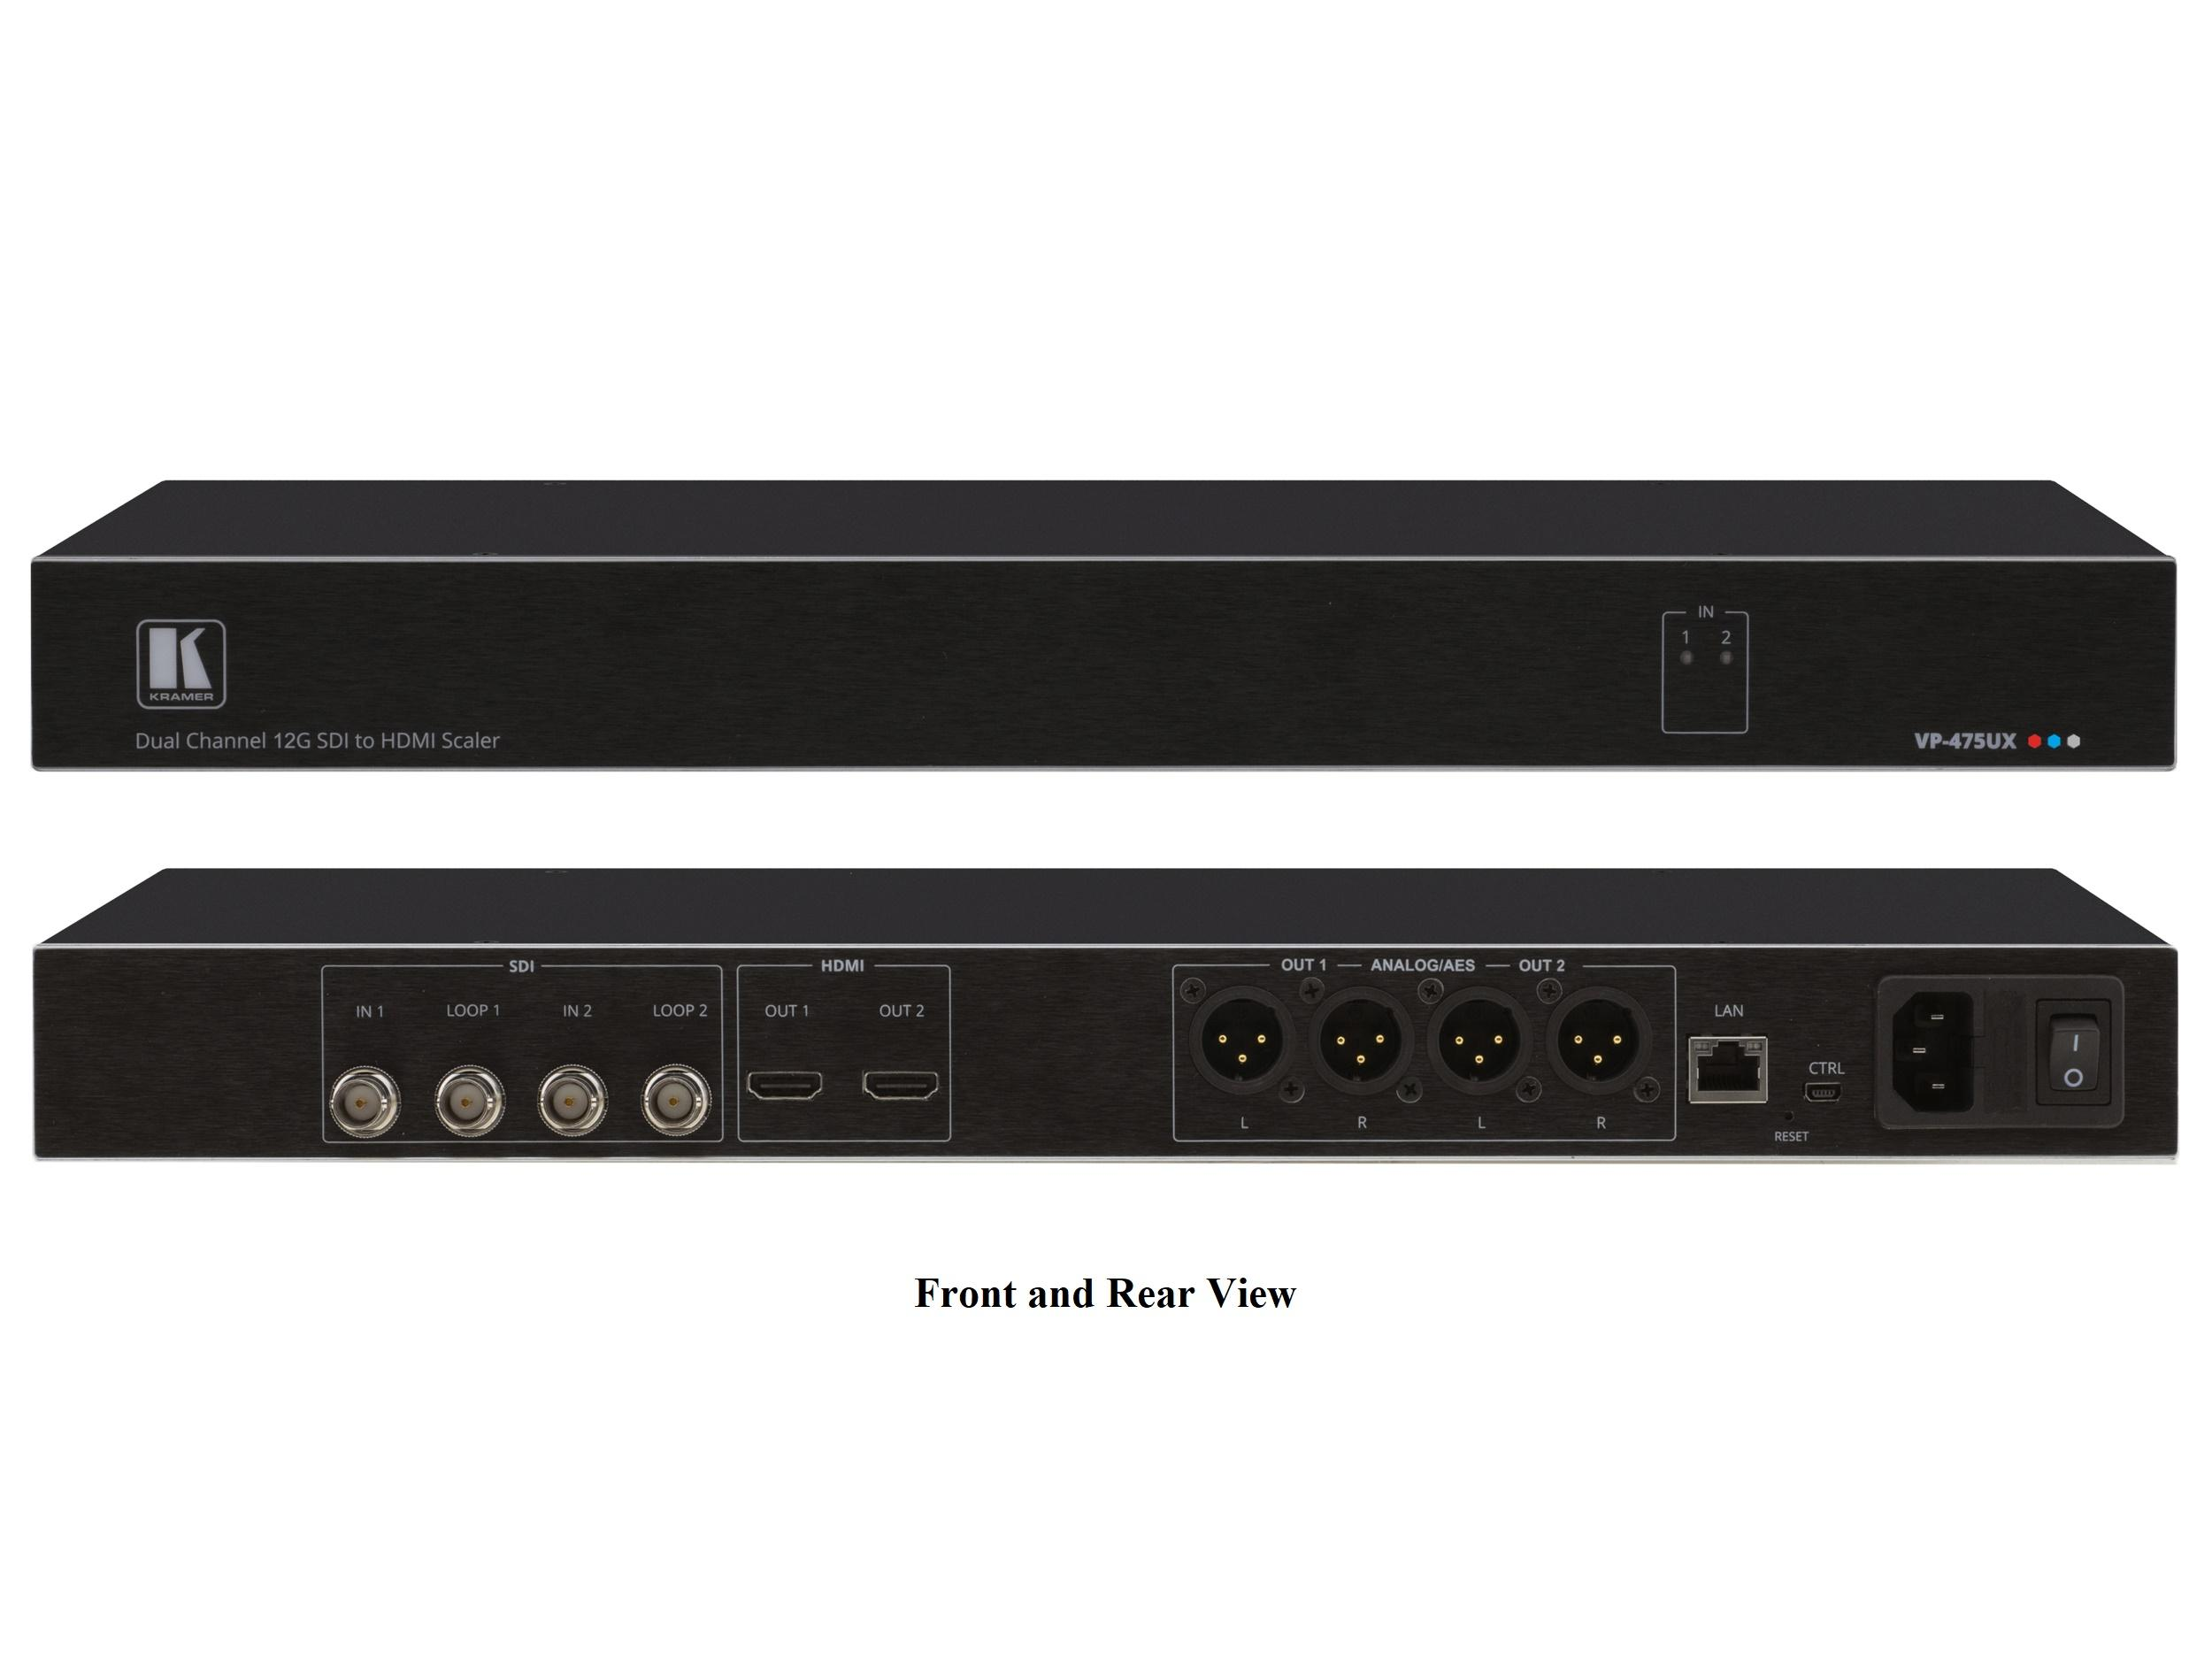 Kramer VP-475UX Dual Port 12G SDI to 4K60 4:4:4 HDMI Scaler/Converter with Audio Extraction